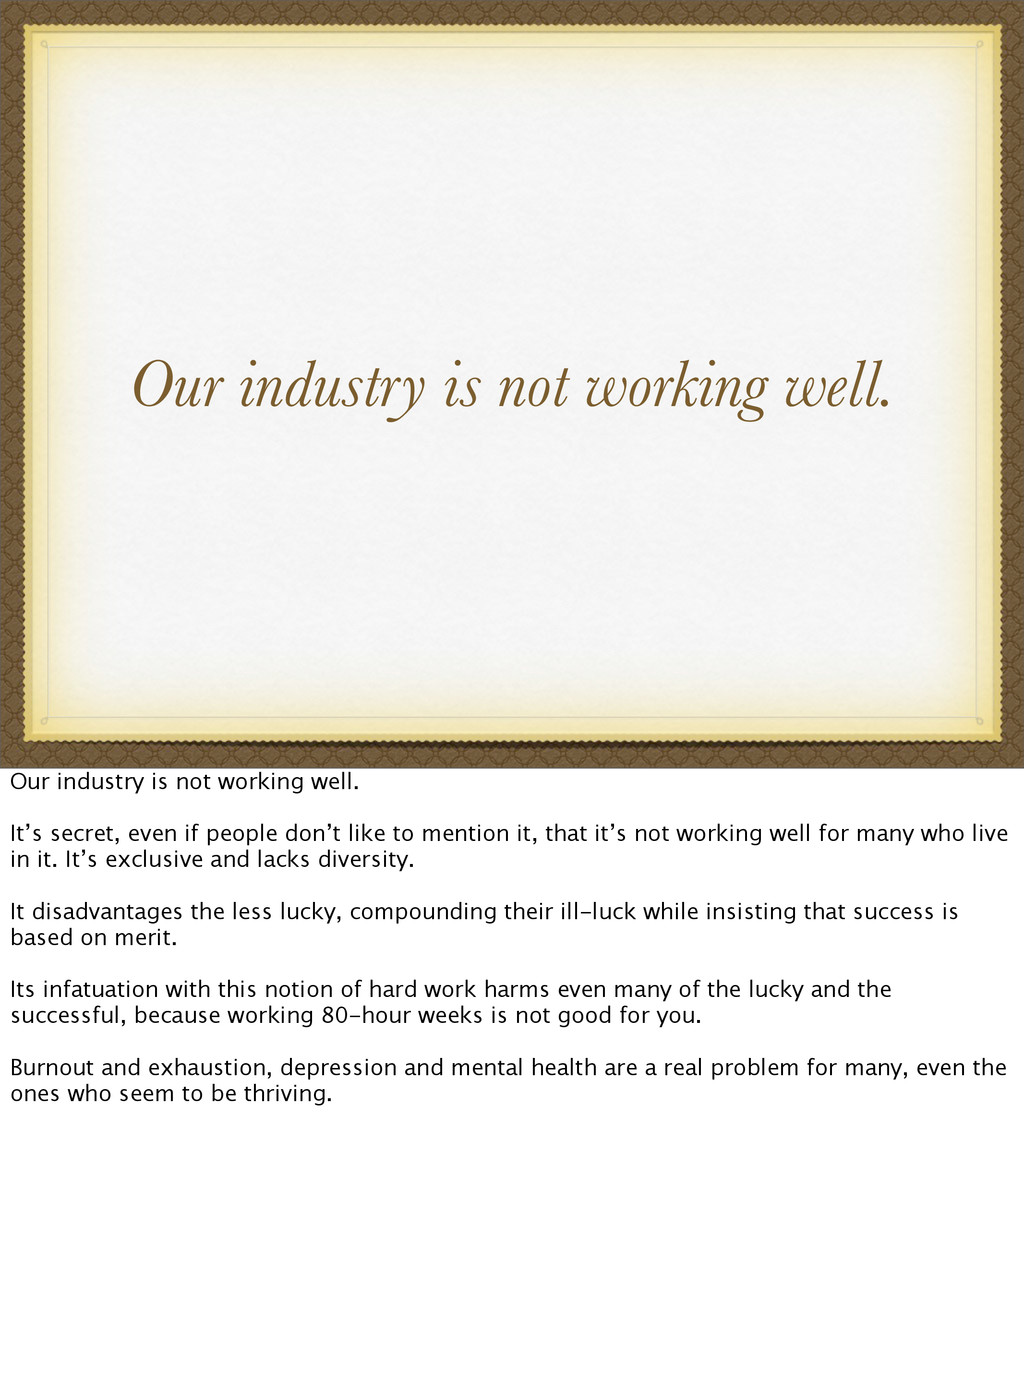 Our industry is not working well. Our industry ...